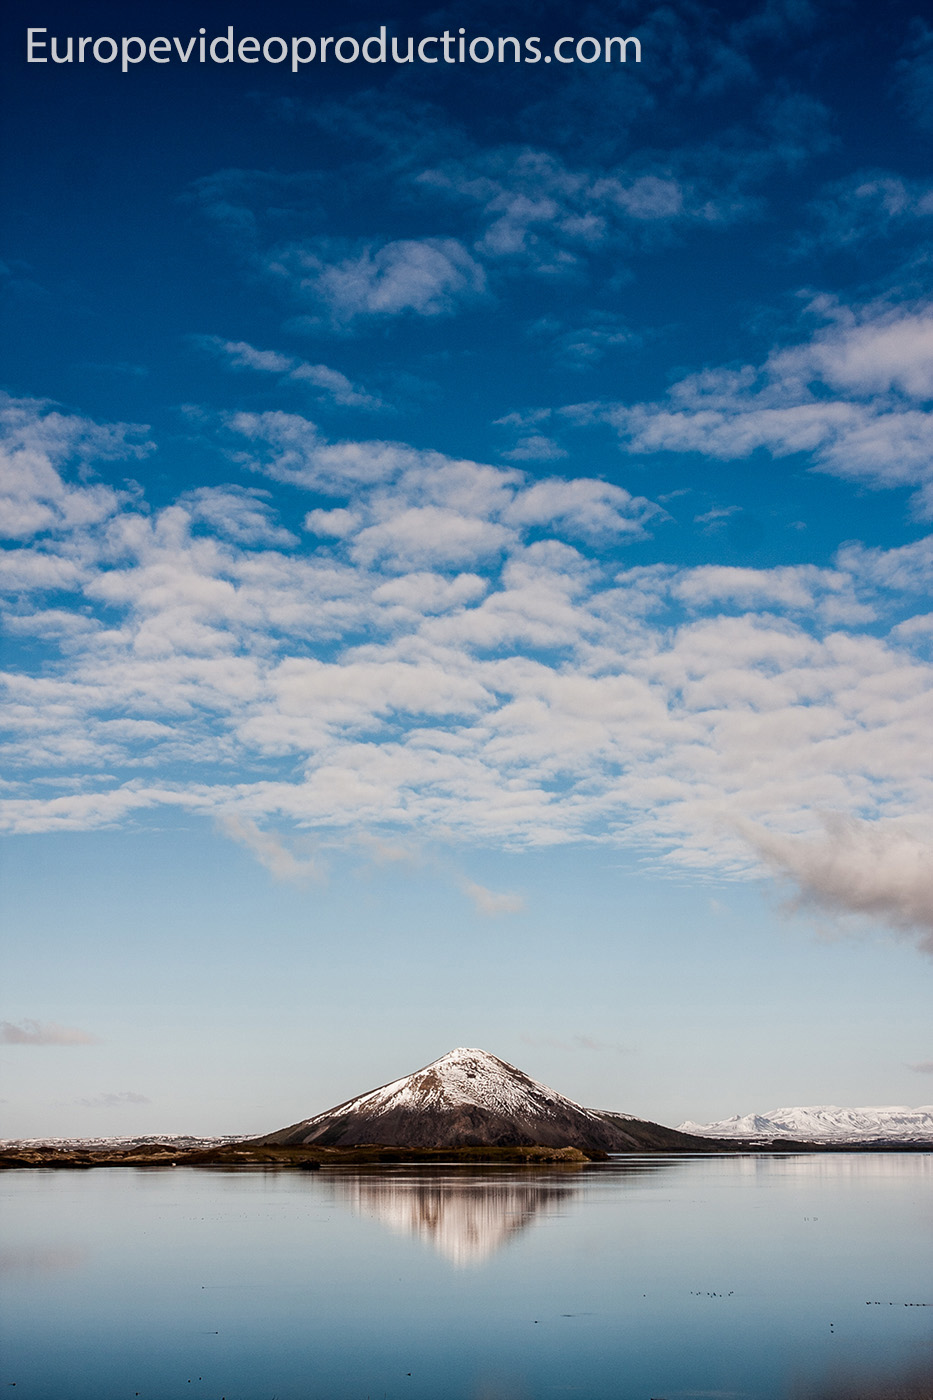 Lake Mývatn and Vindbelgur Mountain in Iceland